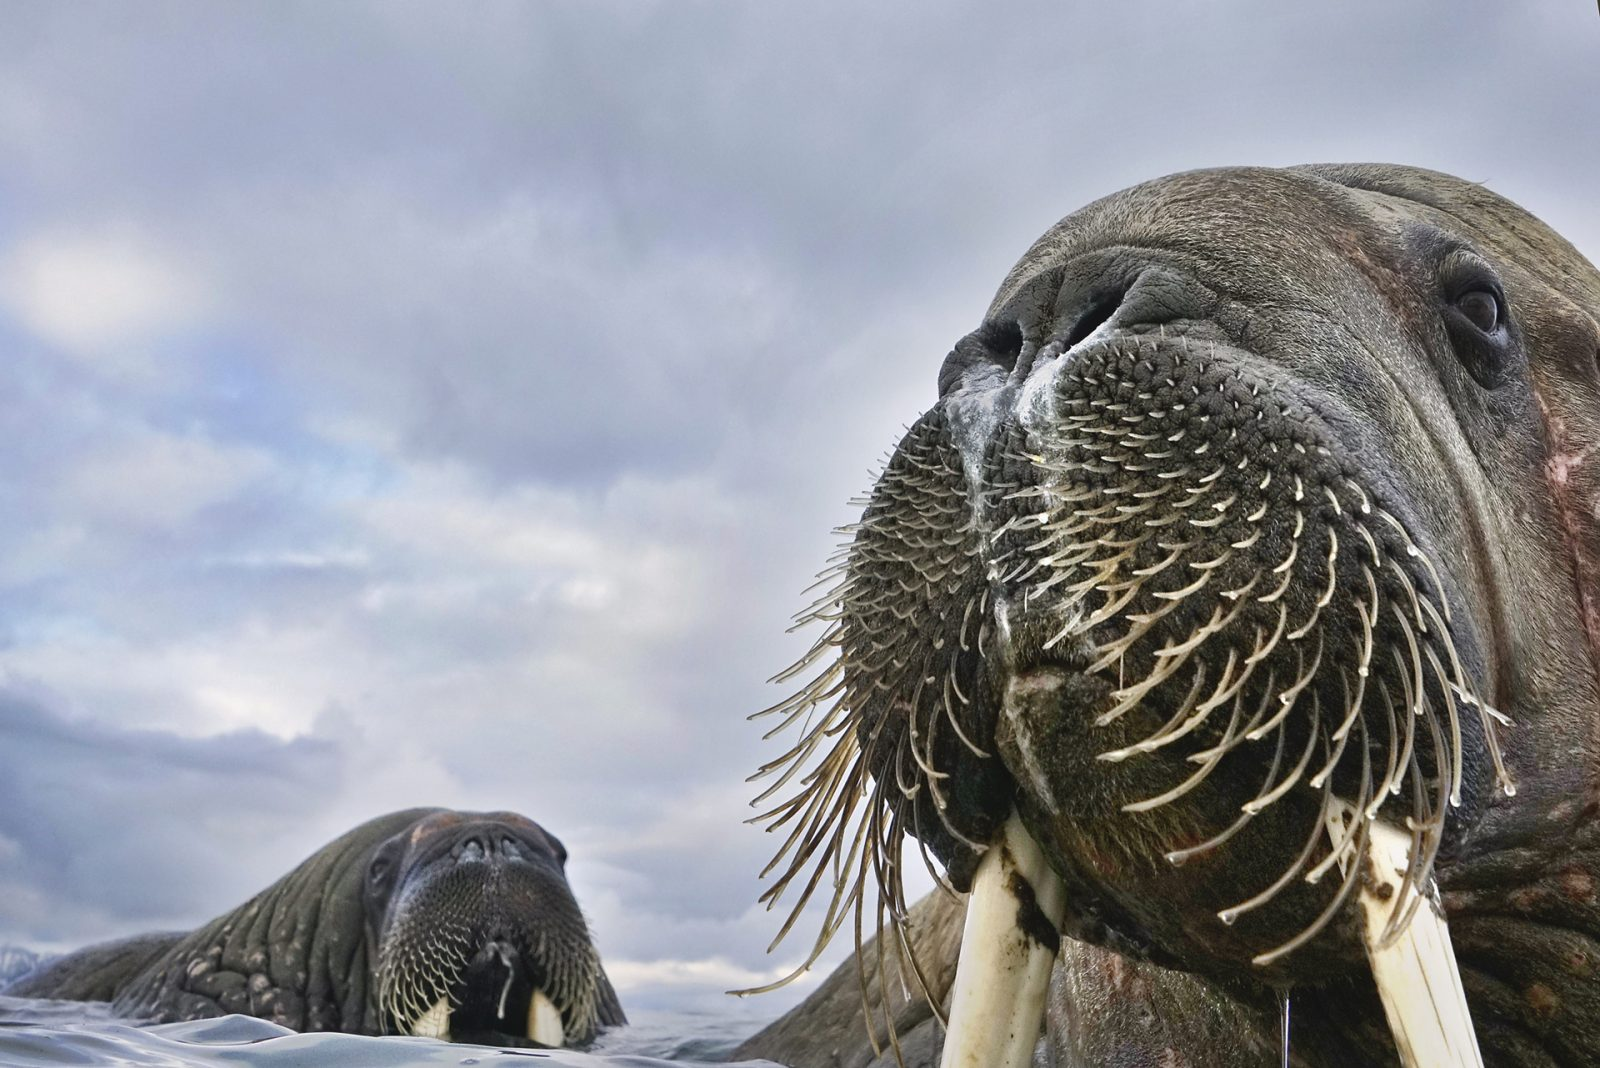 I reached a small colony of walruses in the Svalbard islands. With an underwater chamber connected to a pole six meters long I was able to approach this young specimen, also immersed in the cold waters of the Arctic.